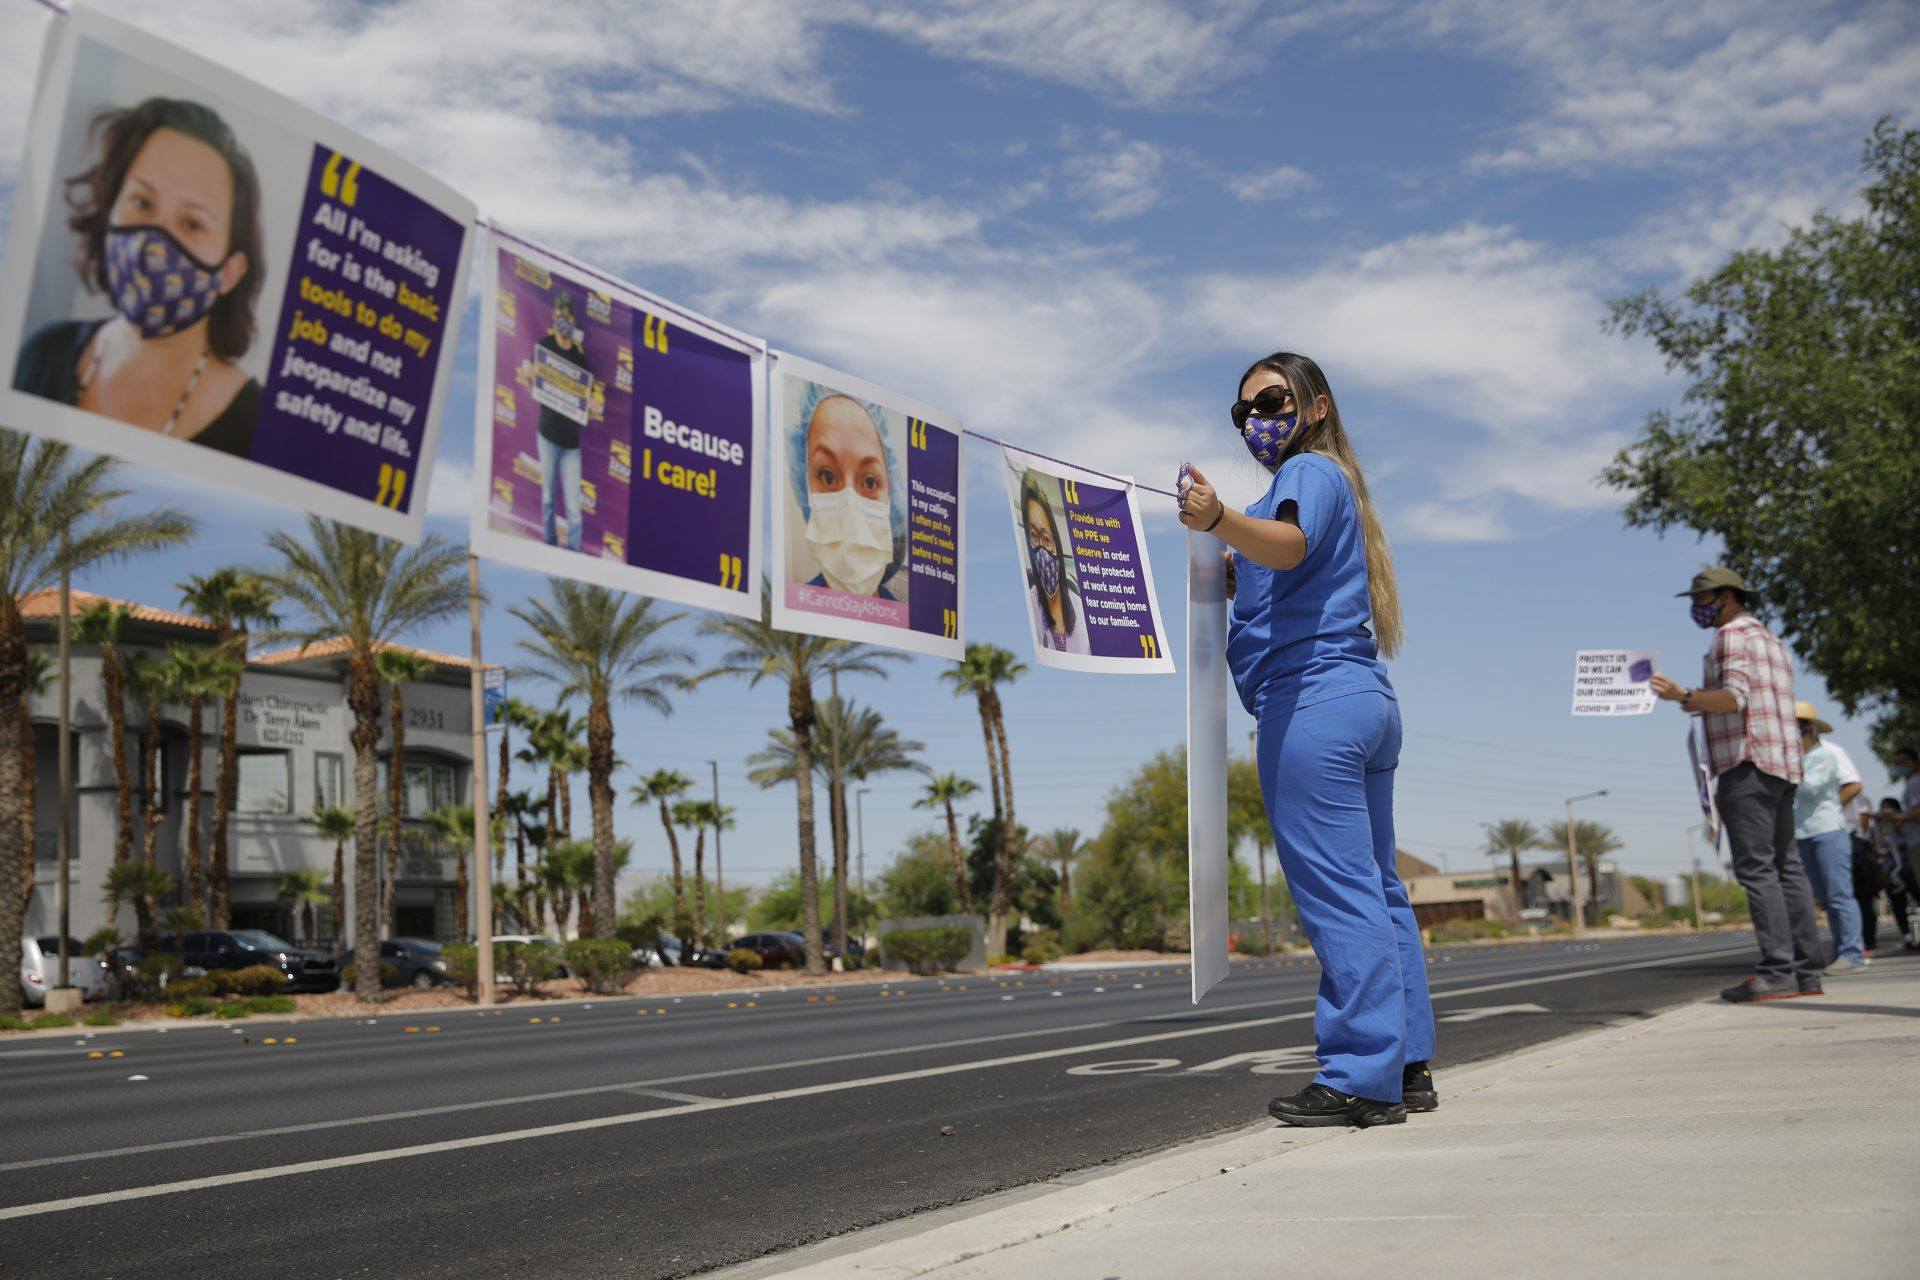 A registered nurse, who declined to give her full name, protests outside of MountainView hospital Thursday, April 30, 2020, in Las Vegas. Healthcare workers protested what they say are unsafe working conditions and demand OSHA to intervene